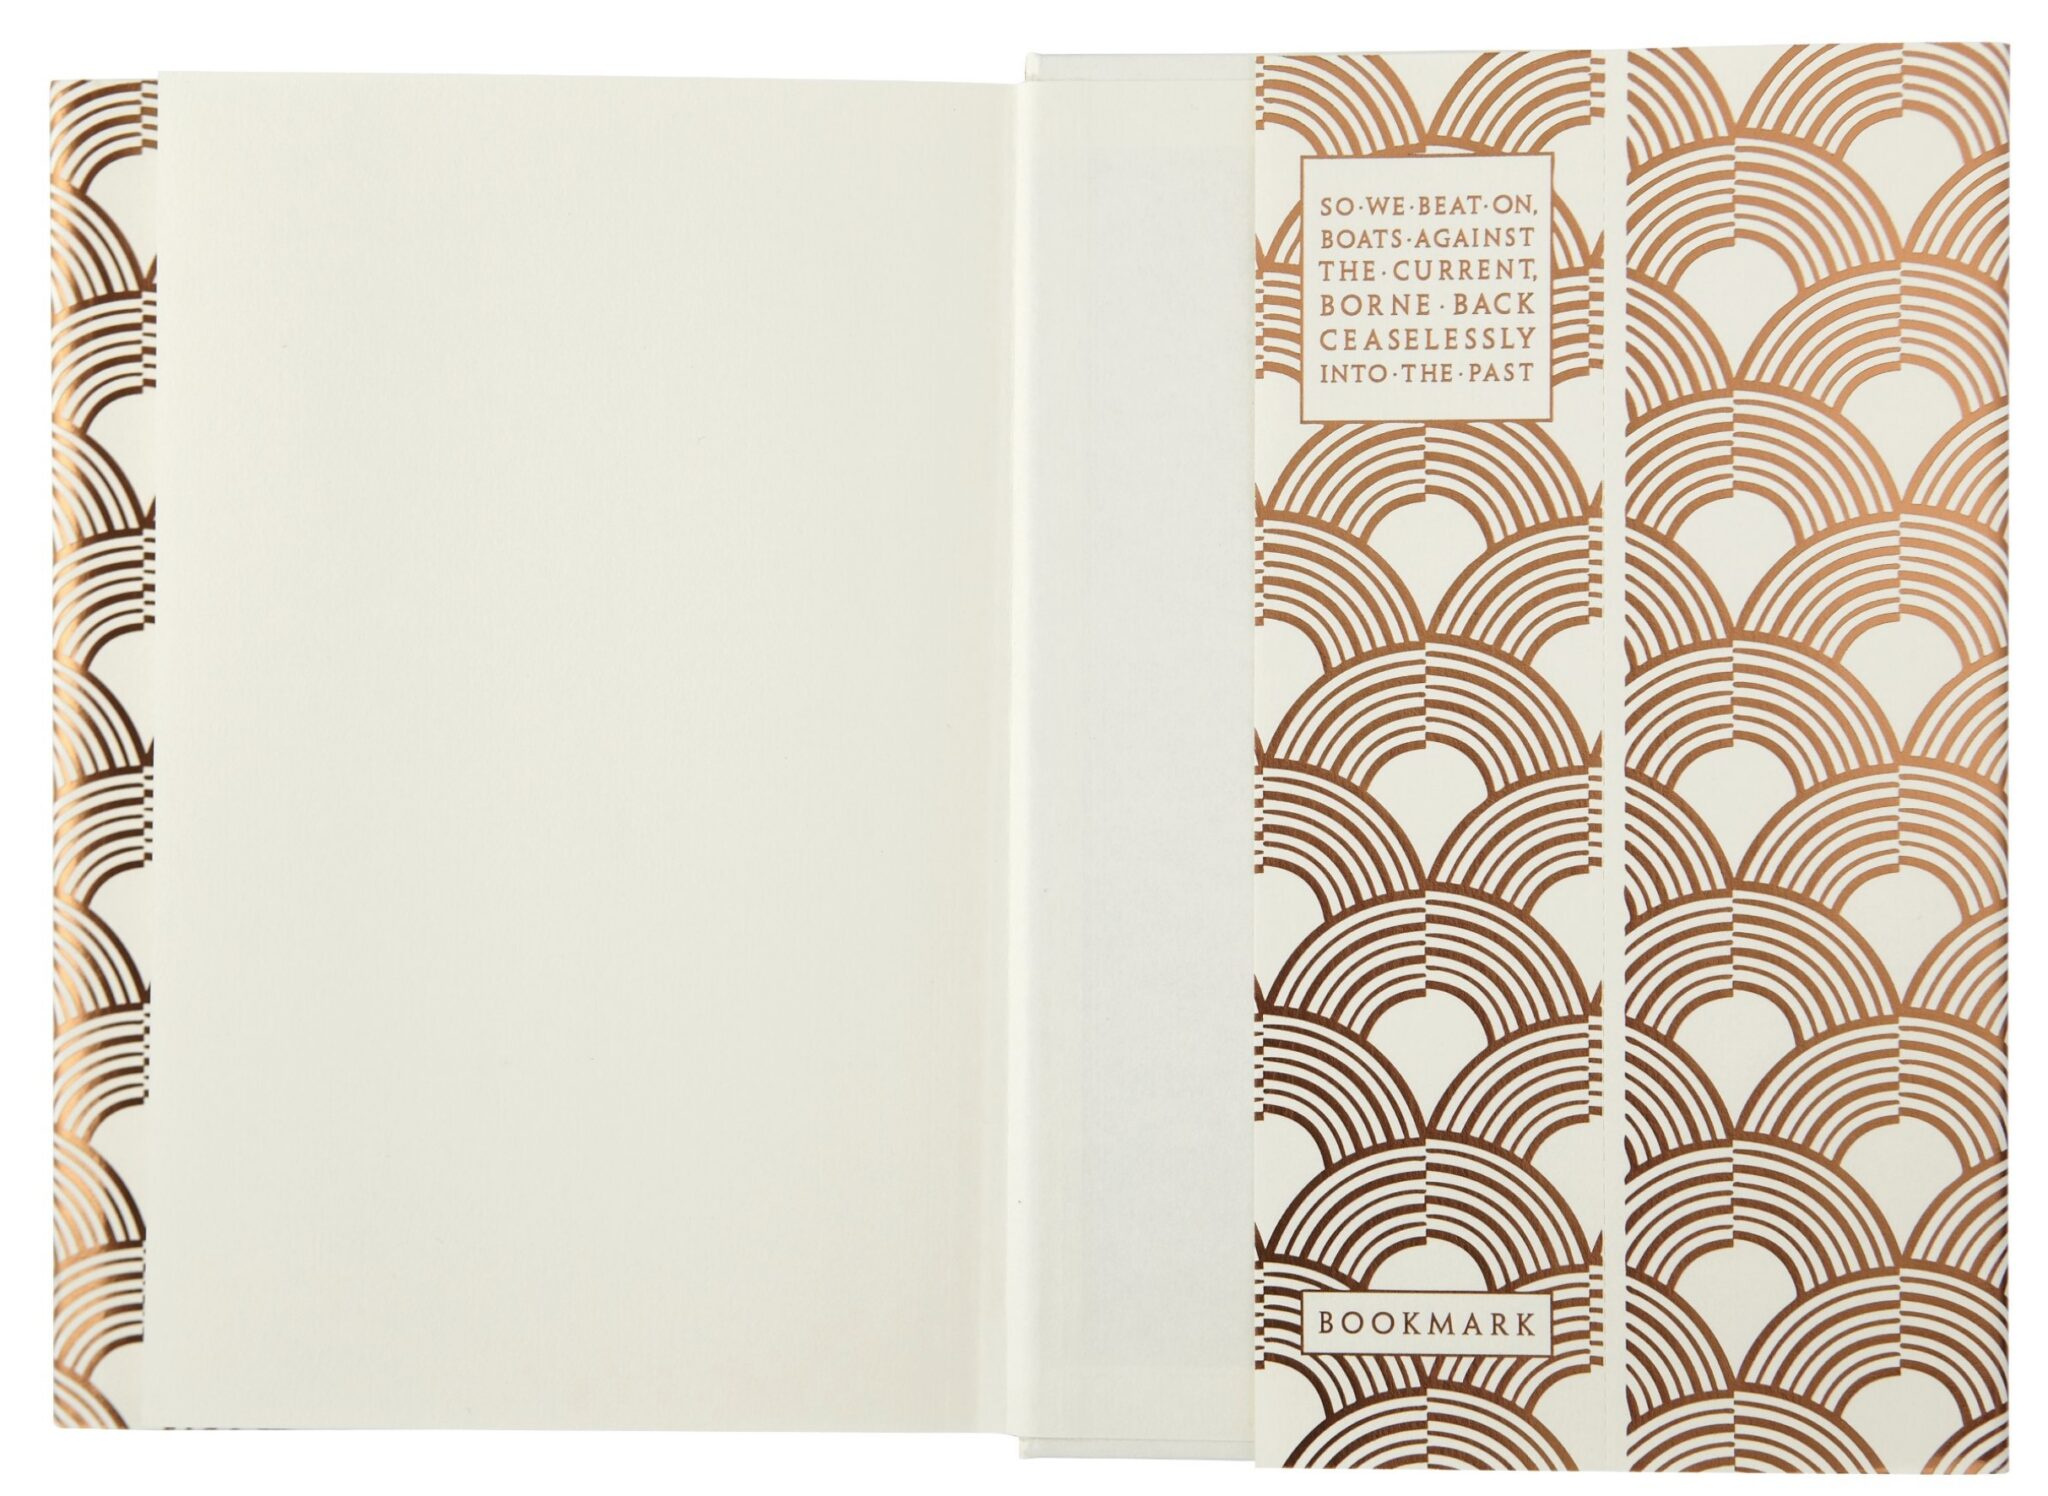 F Scott Fizgerald Foiled Great Gatsby dust jacket